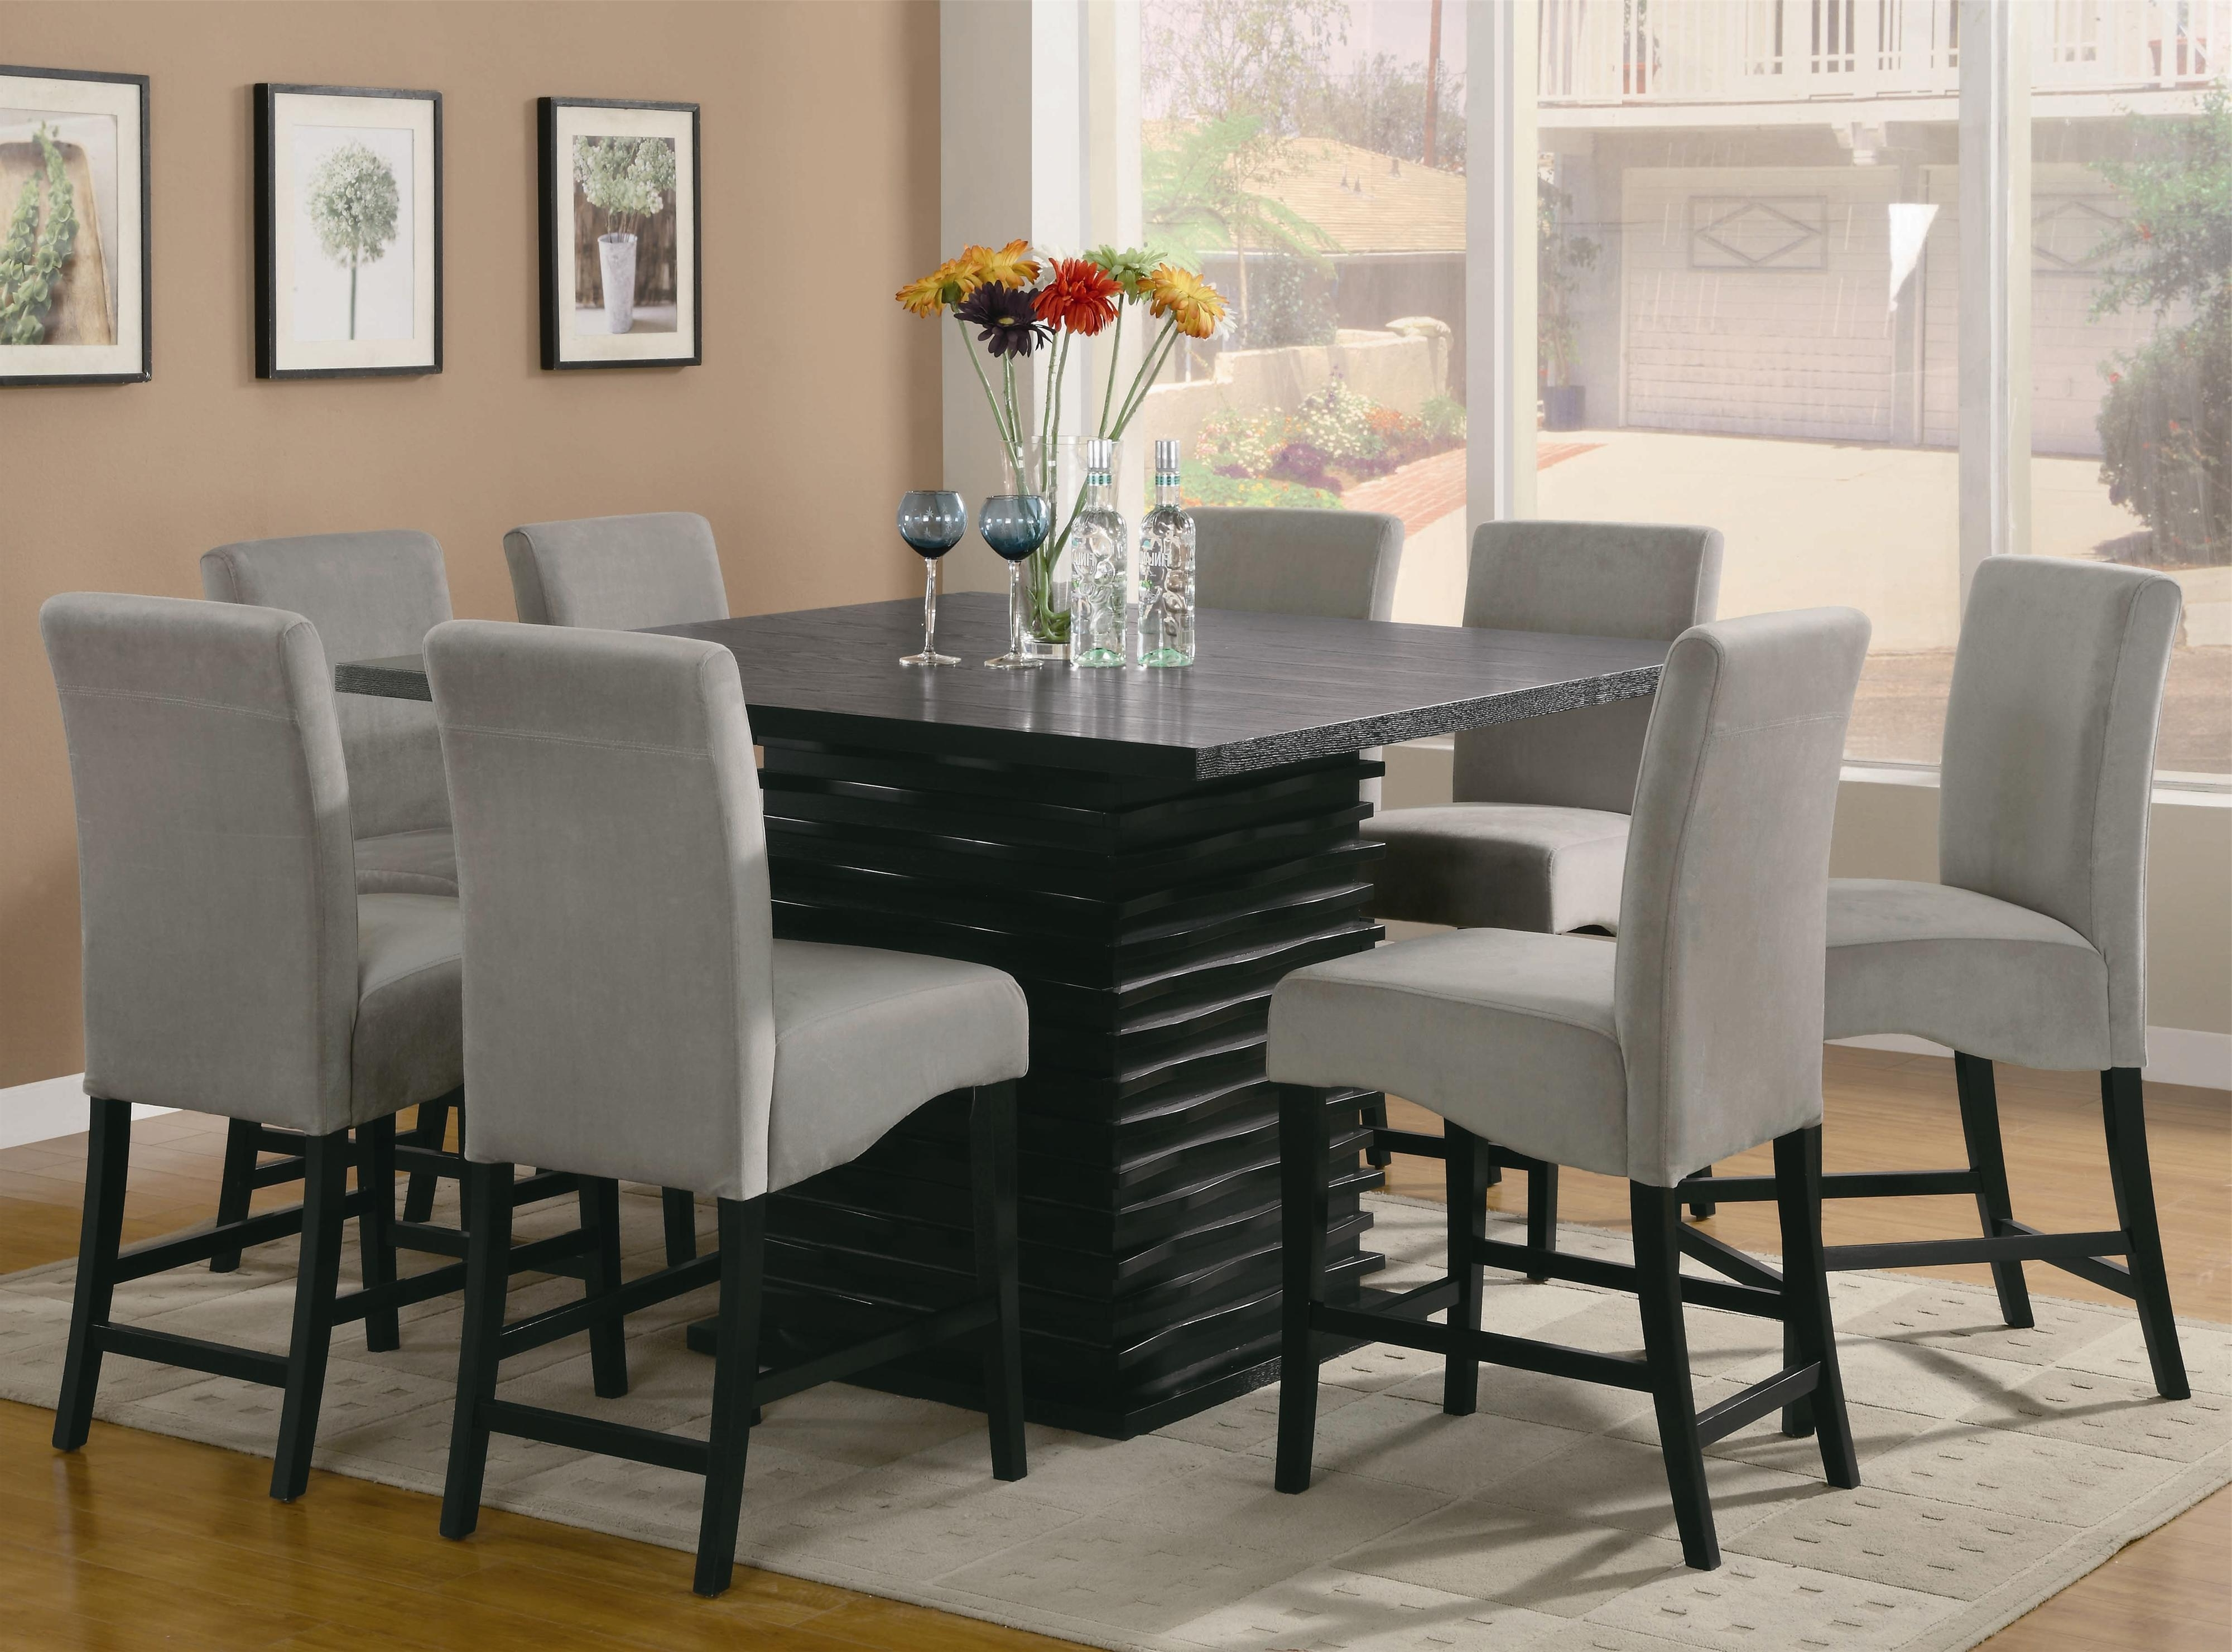 8 Chairs Dining Tables With Regard To Best And Newest Coaster Stanton 9 Piece Table And Chair Set (View 21 of 25)